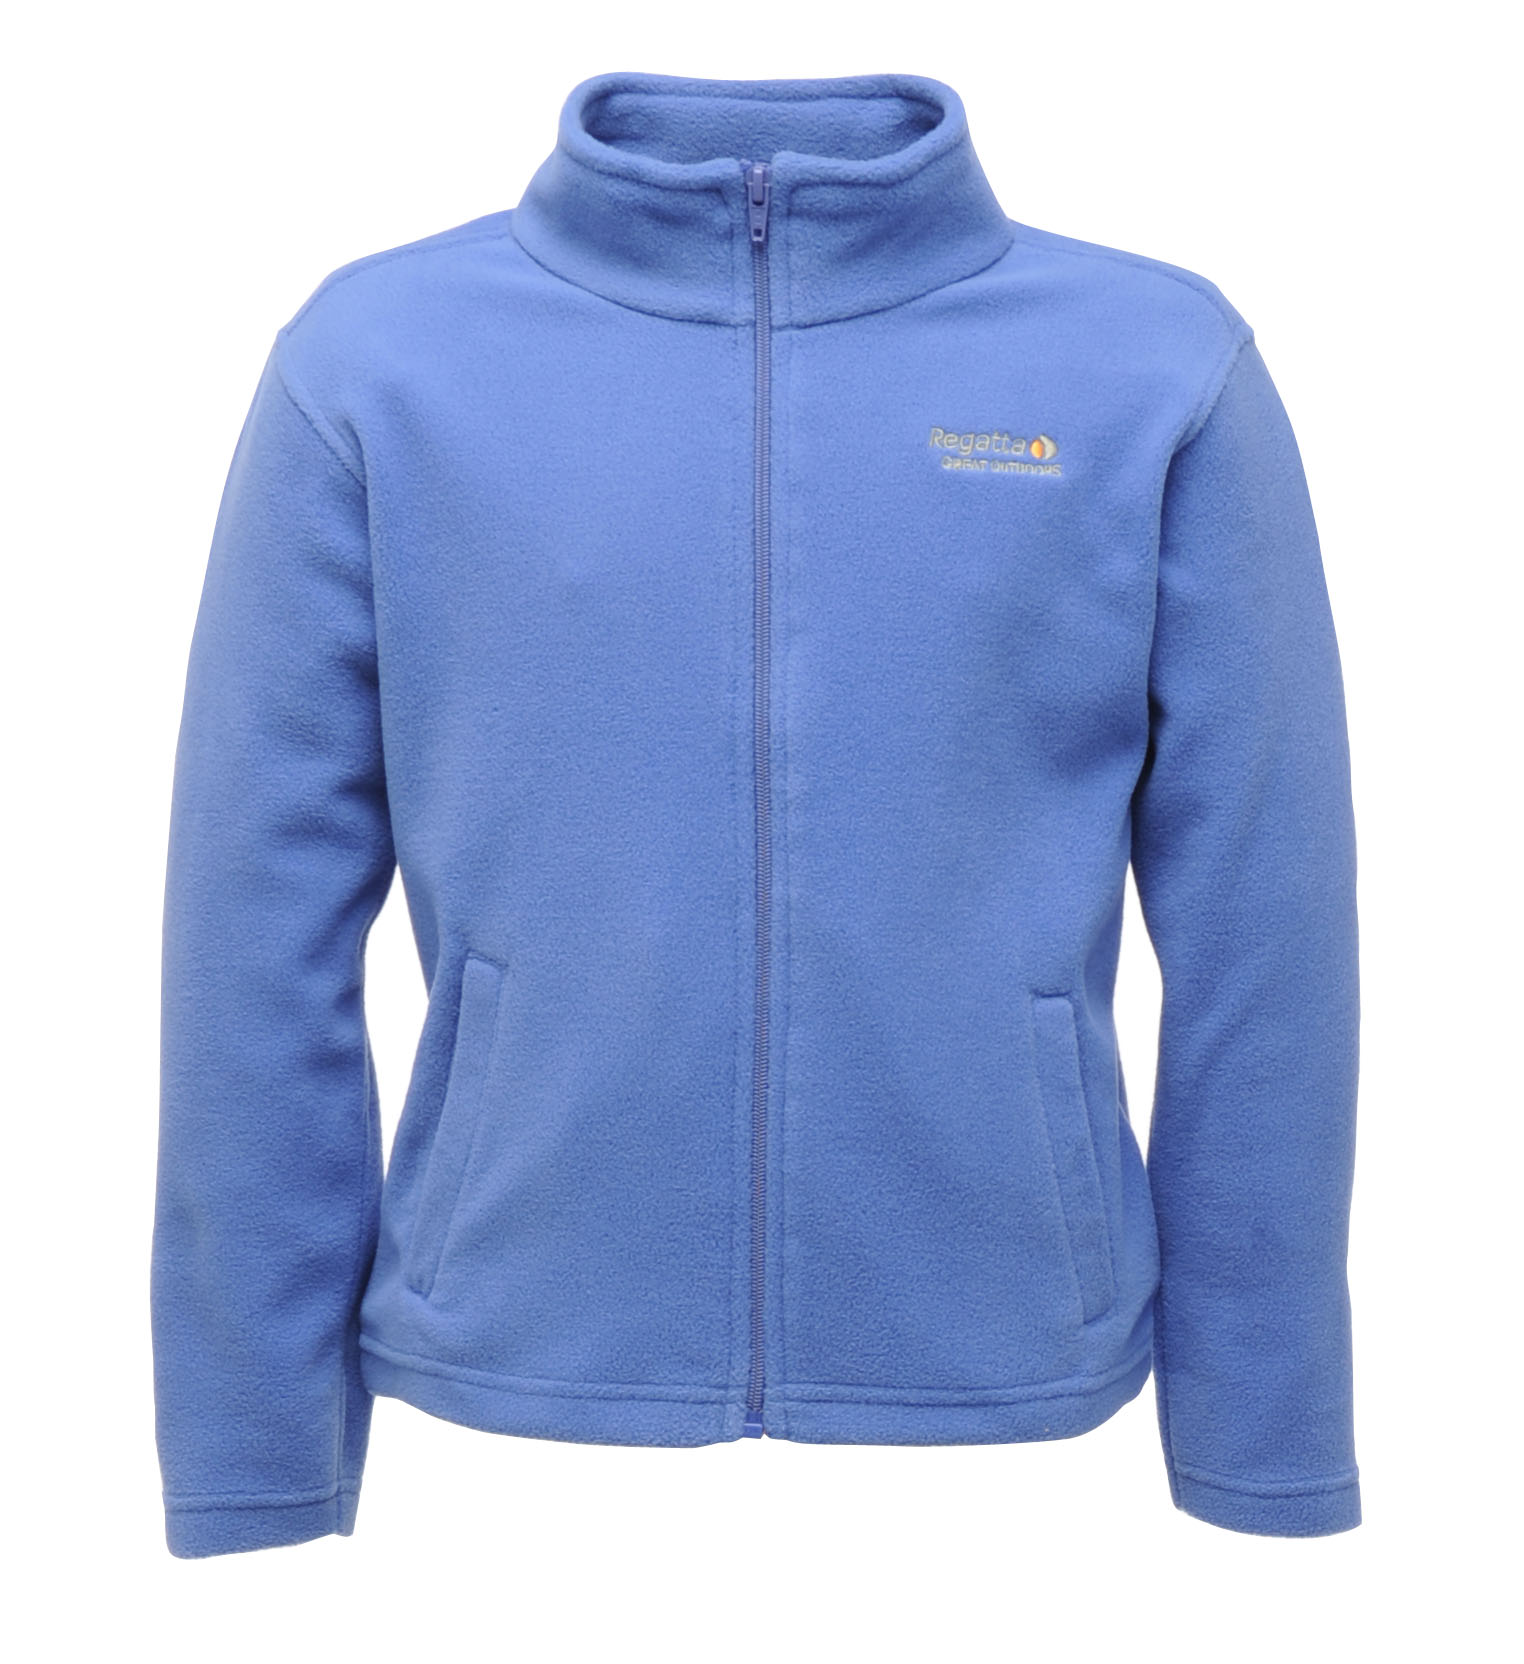 Regatta King Girl's Fleece - Blueberry Pie